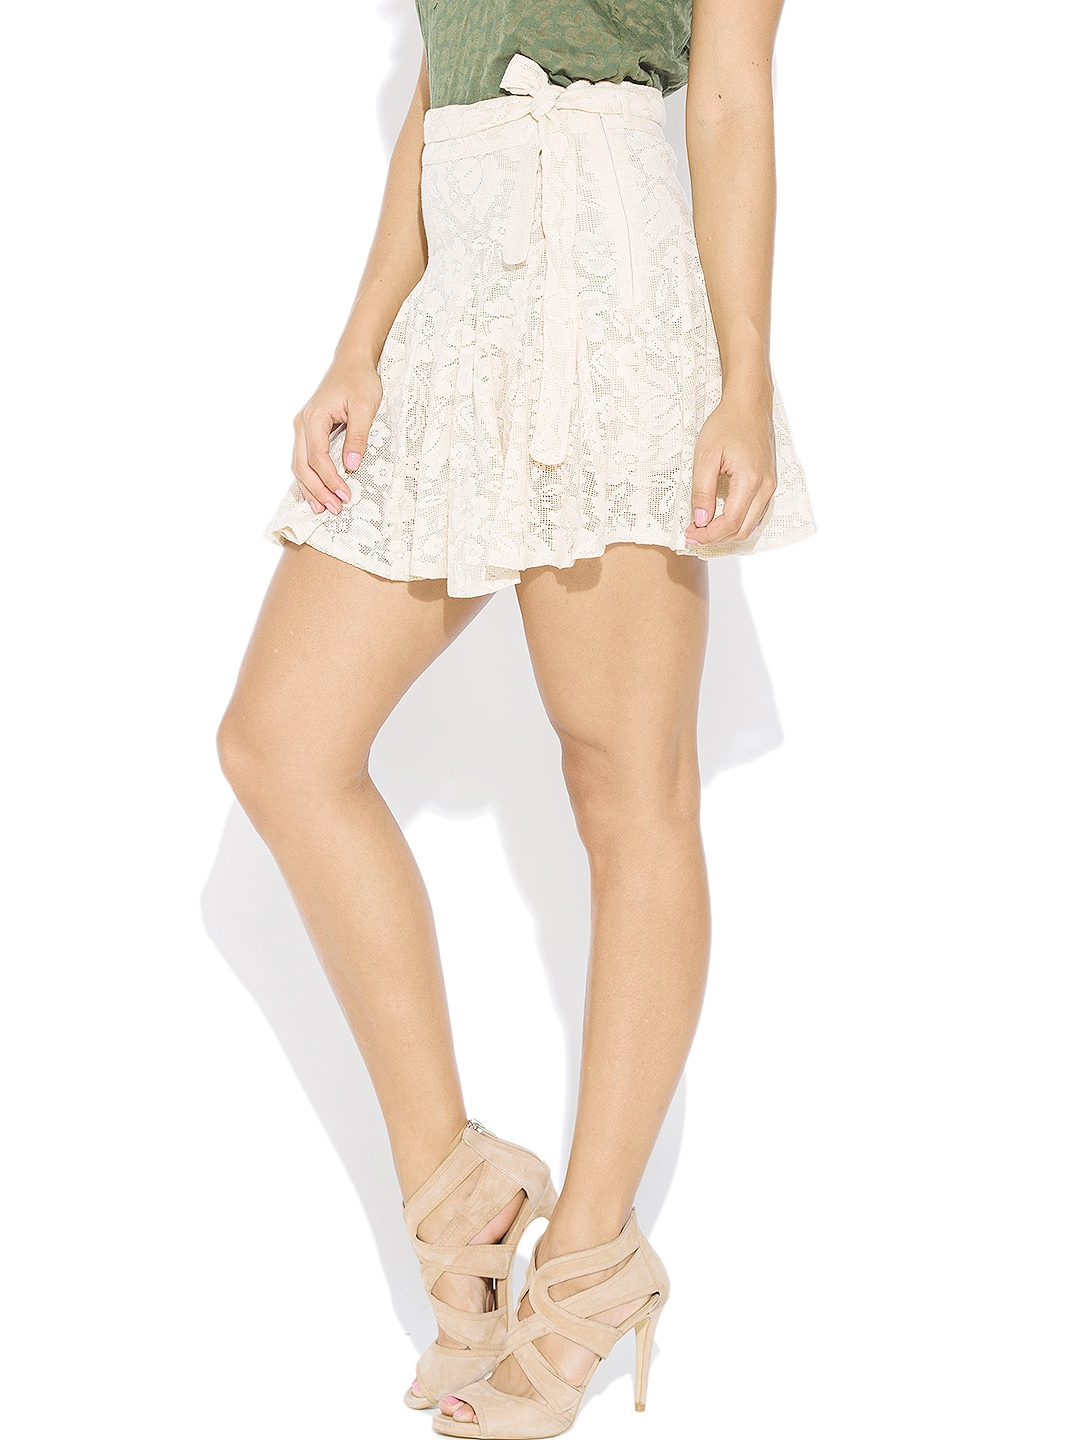 Find cream lace skirt and top at ShopStyle. Shop the latest collection of cream lace skirt and top from the most popular stores - all in one place.